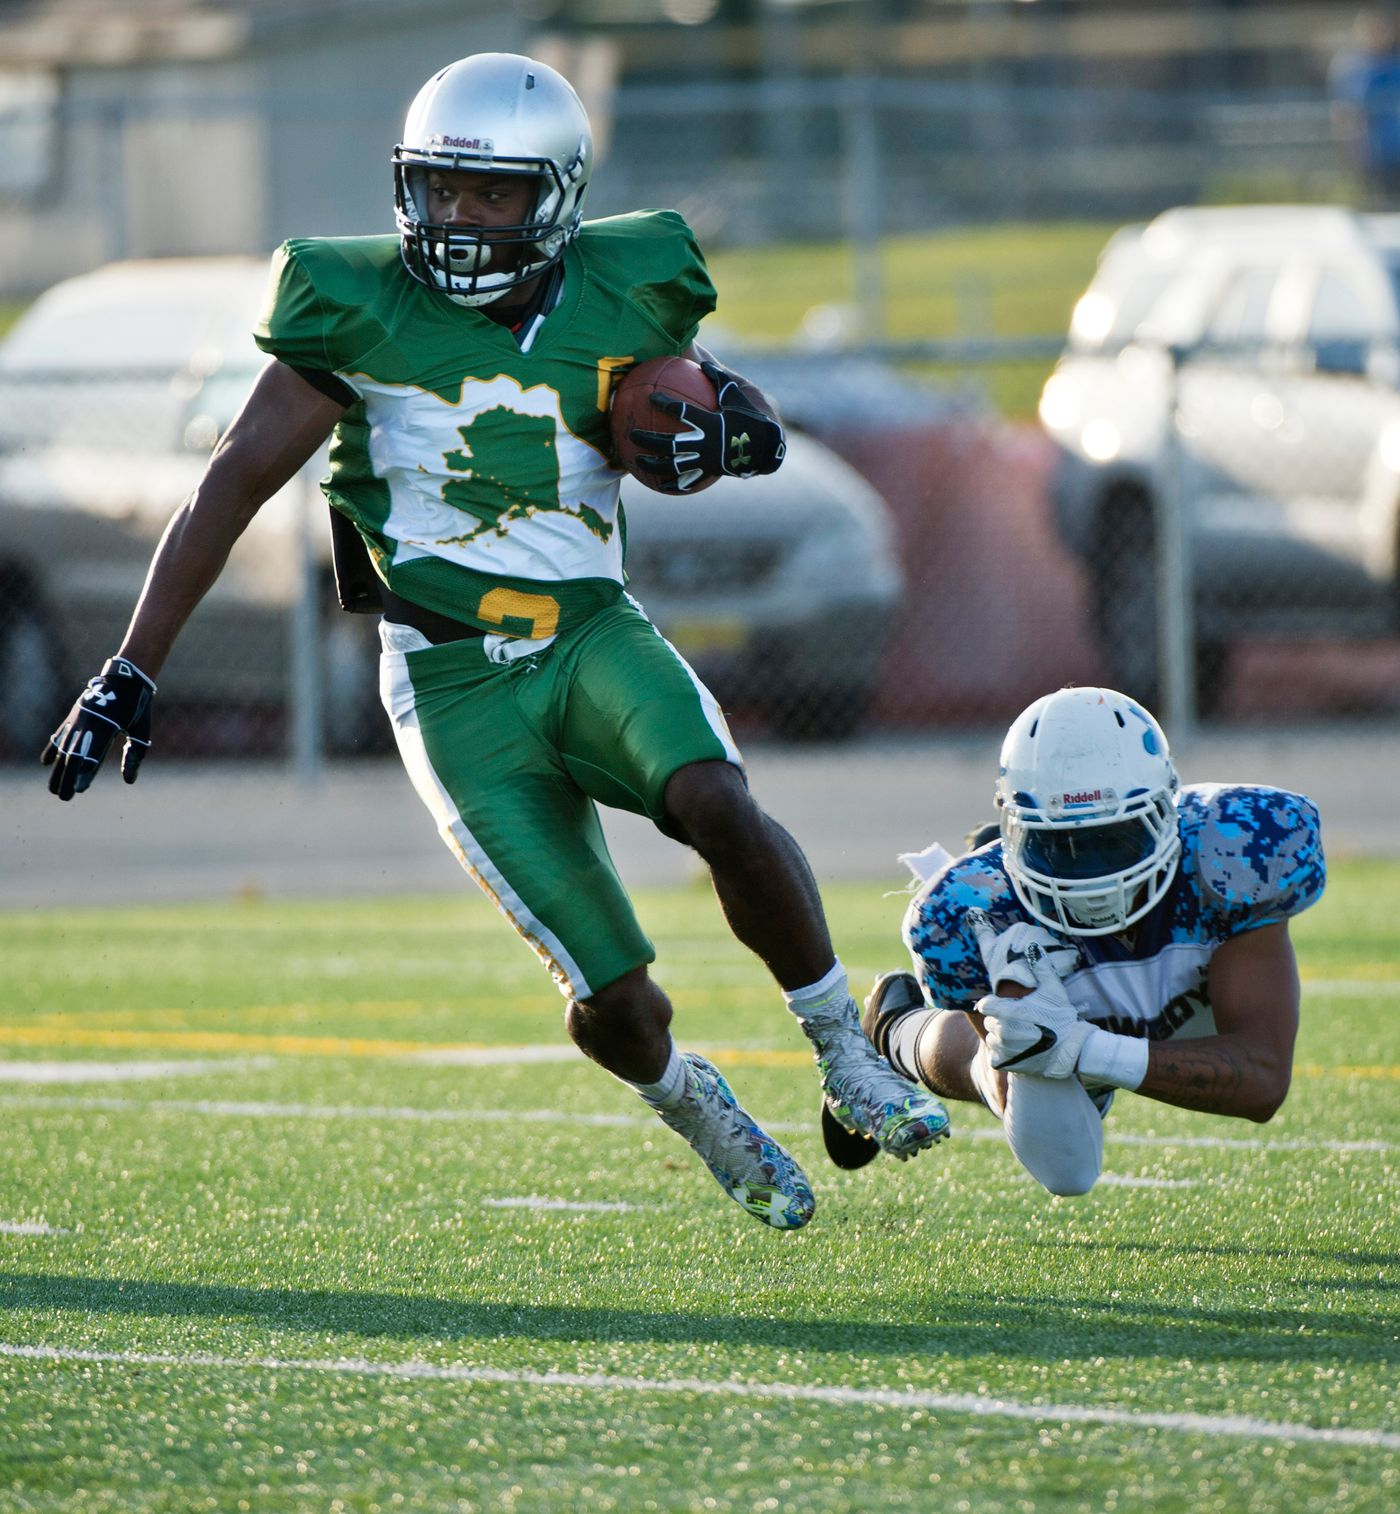 Tamarik Wilks escapes a tackle in a game against the Eagle River Cowboys on Sept. 3, 2018. (Marc Lester / ADN)